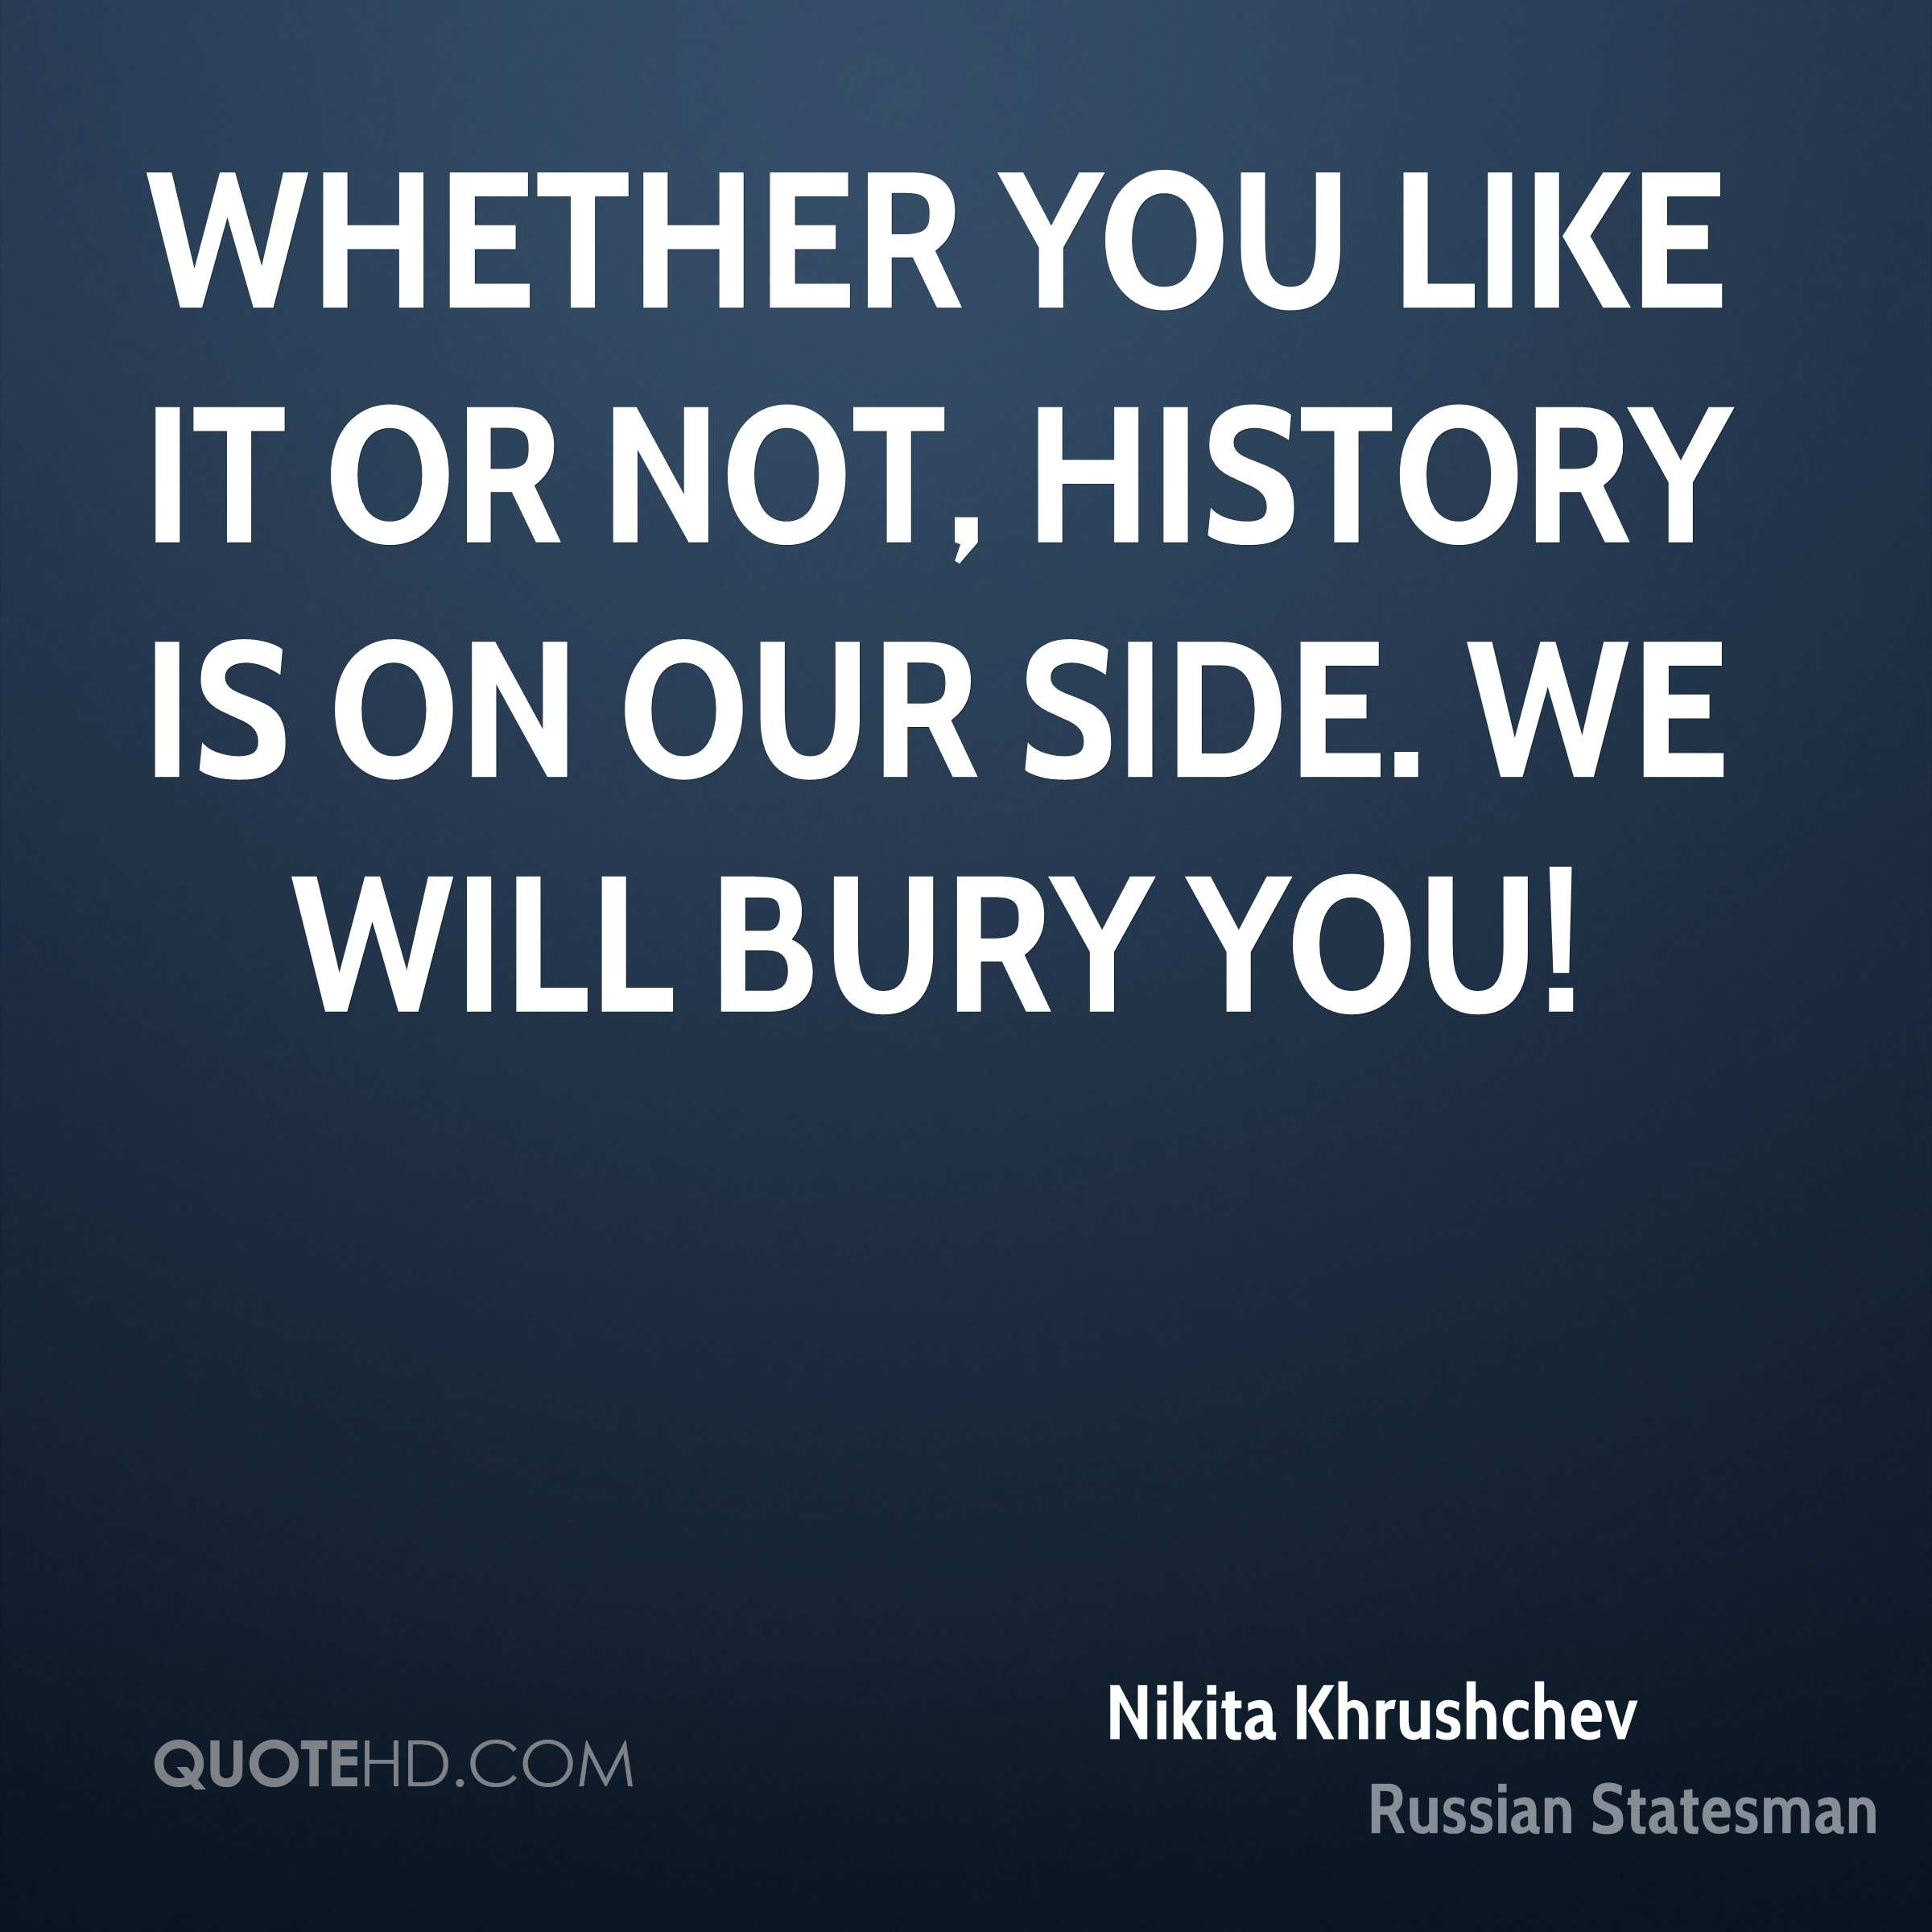 Whether you like it or not, history is on our side. We will bury you!